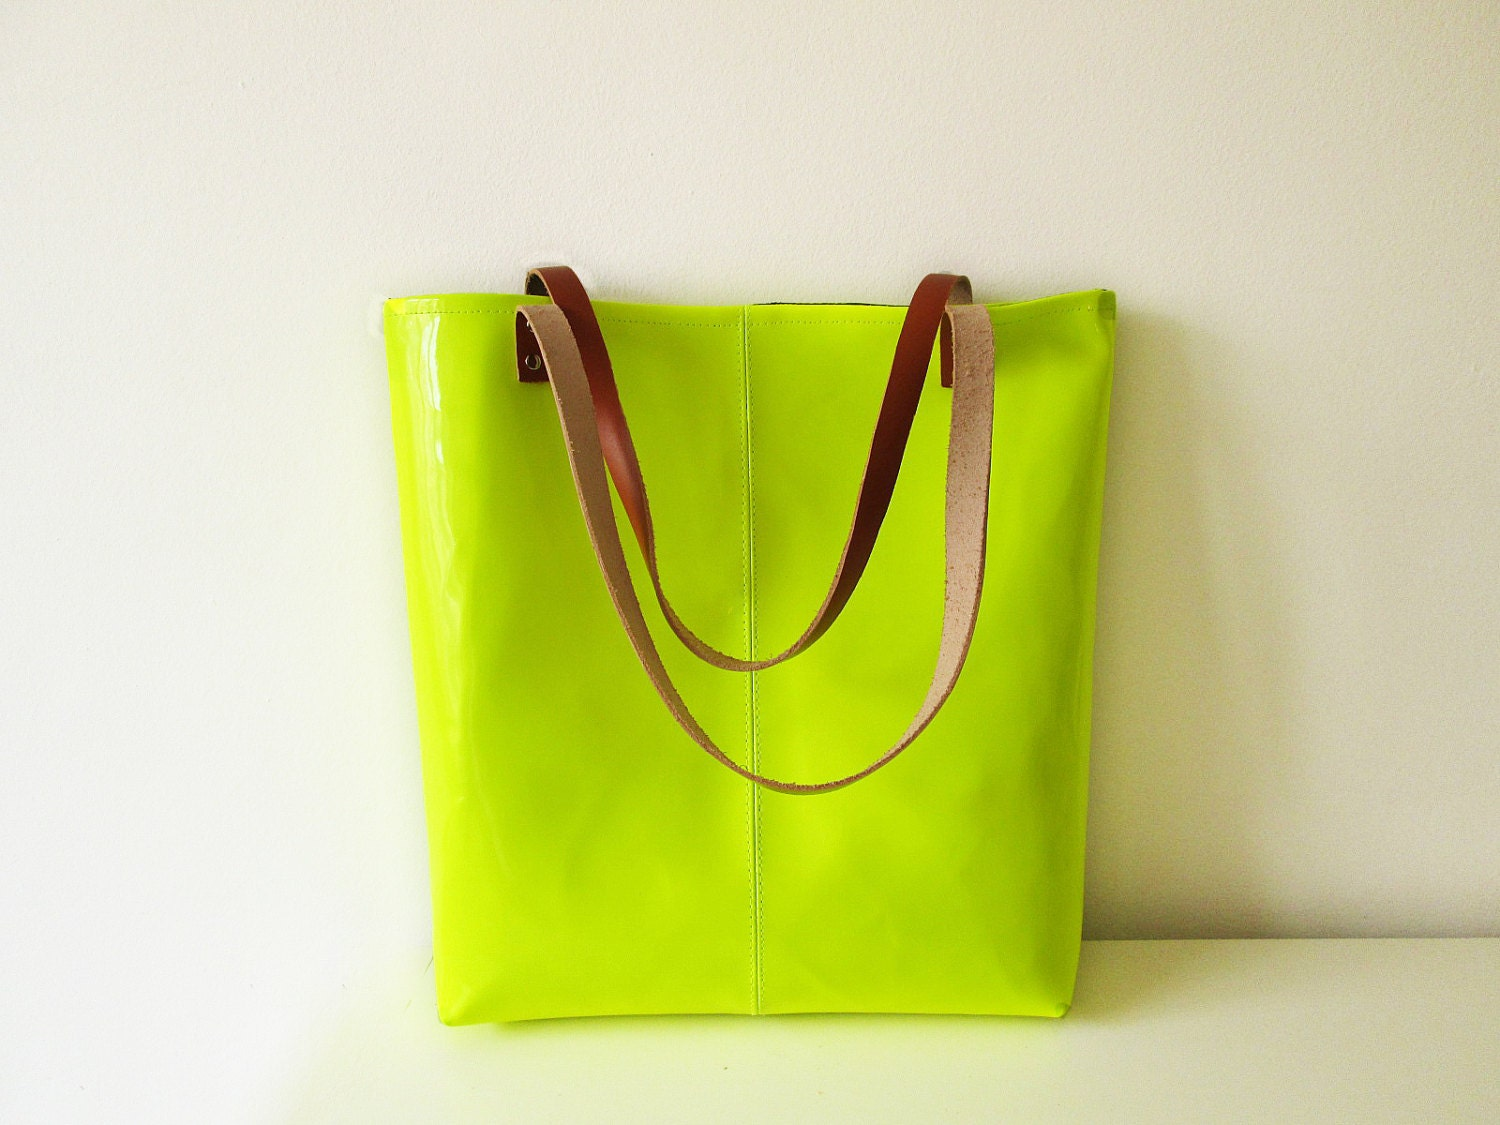 Neon Tote bag, Vegan Leather Tote, Lime, Fluorescent Yellow, Patent - byMART